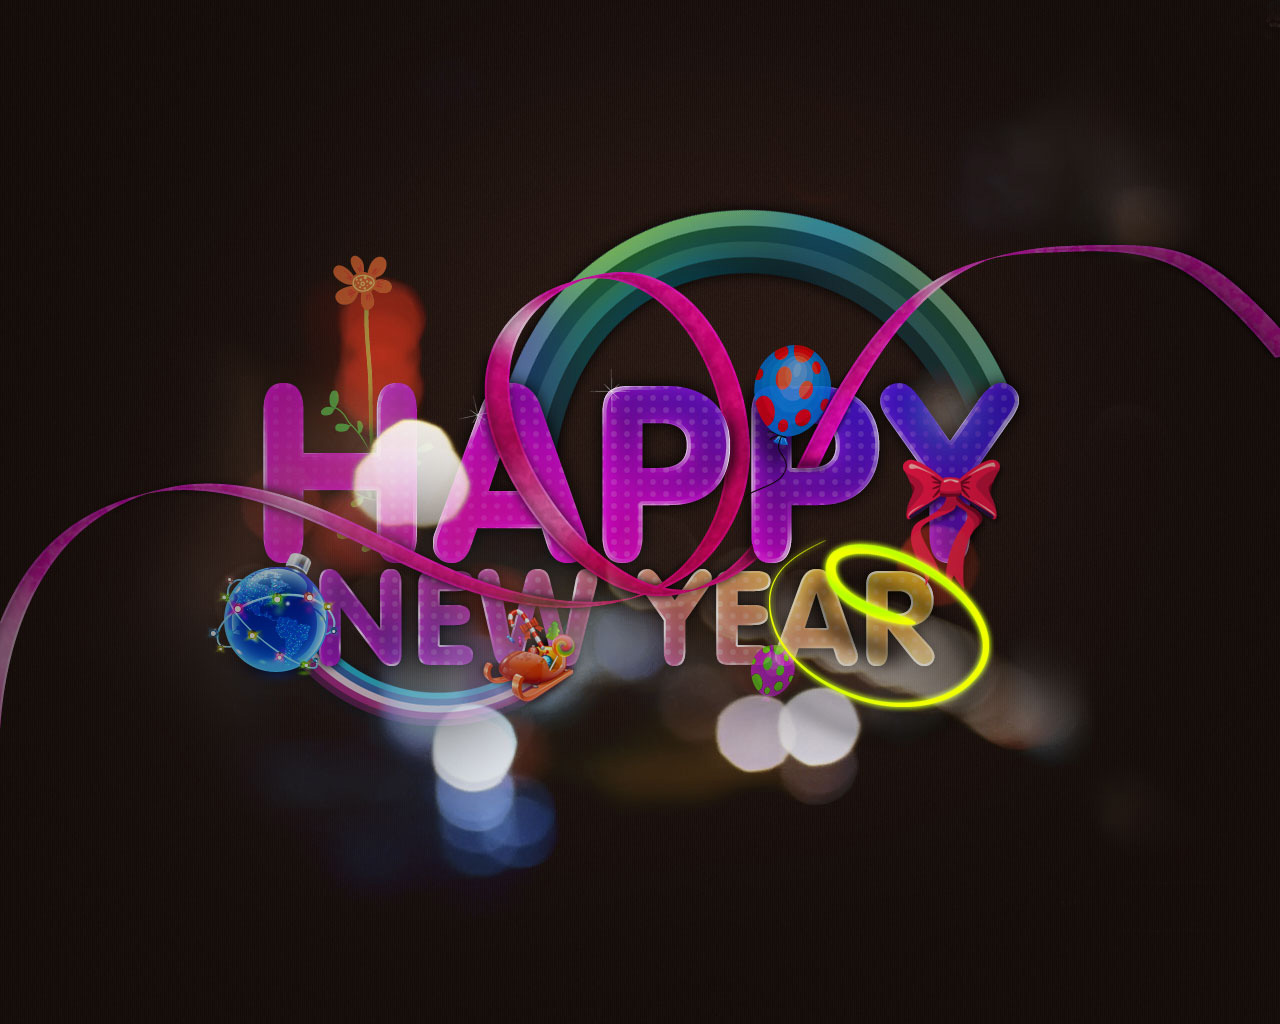 Wallpapers for New Year and Christmas. 1280 x 1024.Happy New Year Letterhead Free 2010